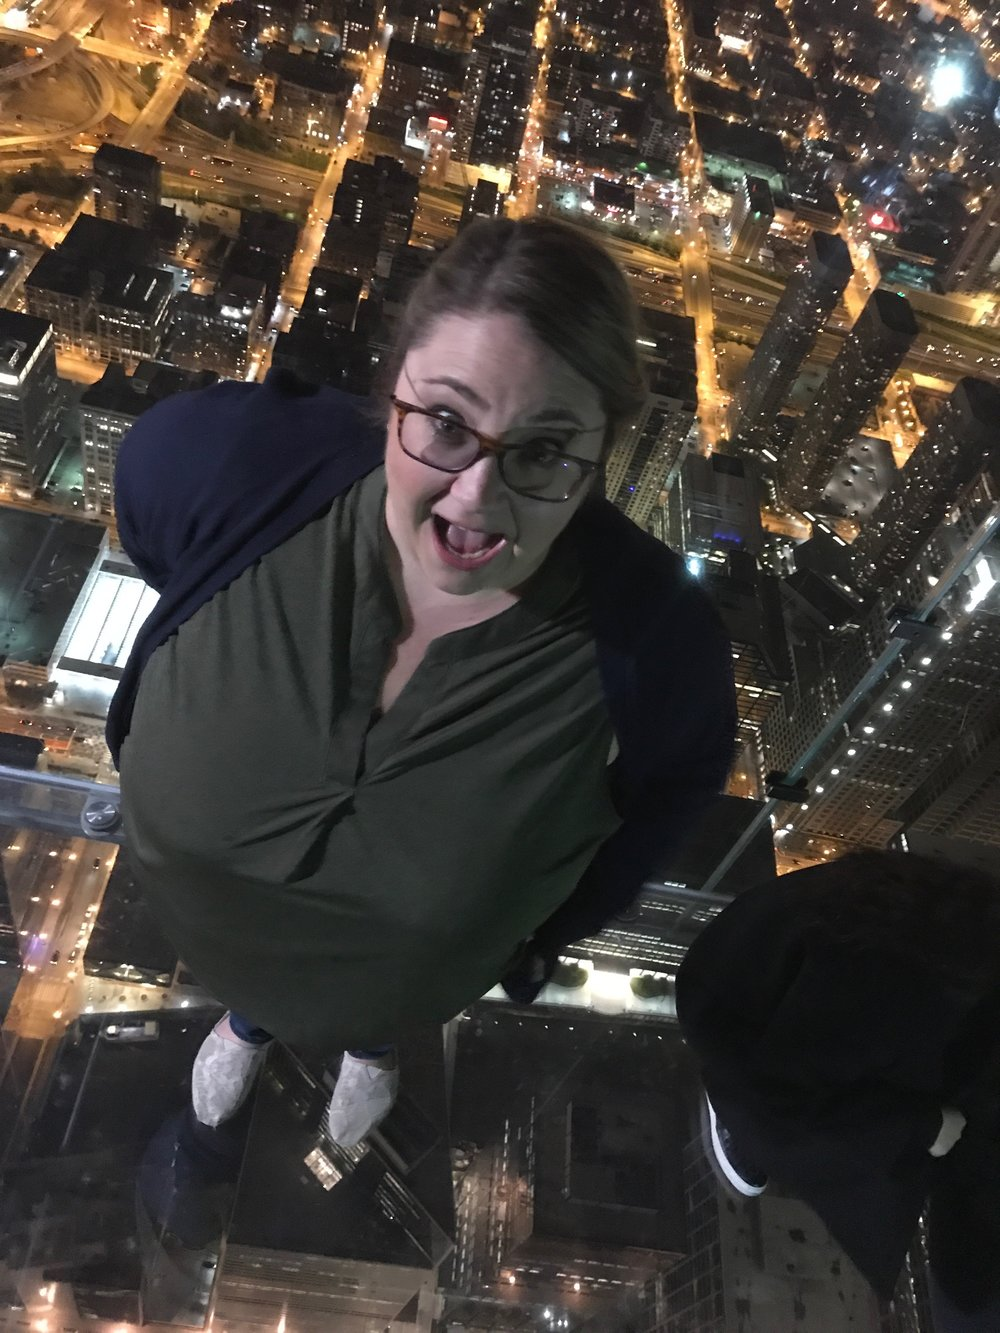 I was over 100 Floors above the ground AND standing on a glass floor.  My blood pressure was through the roof.